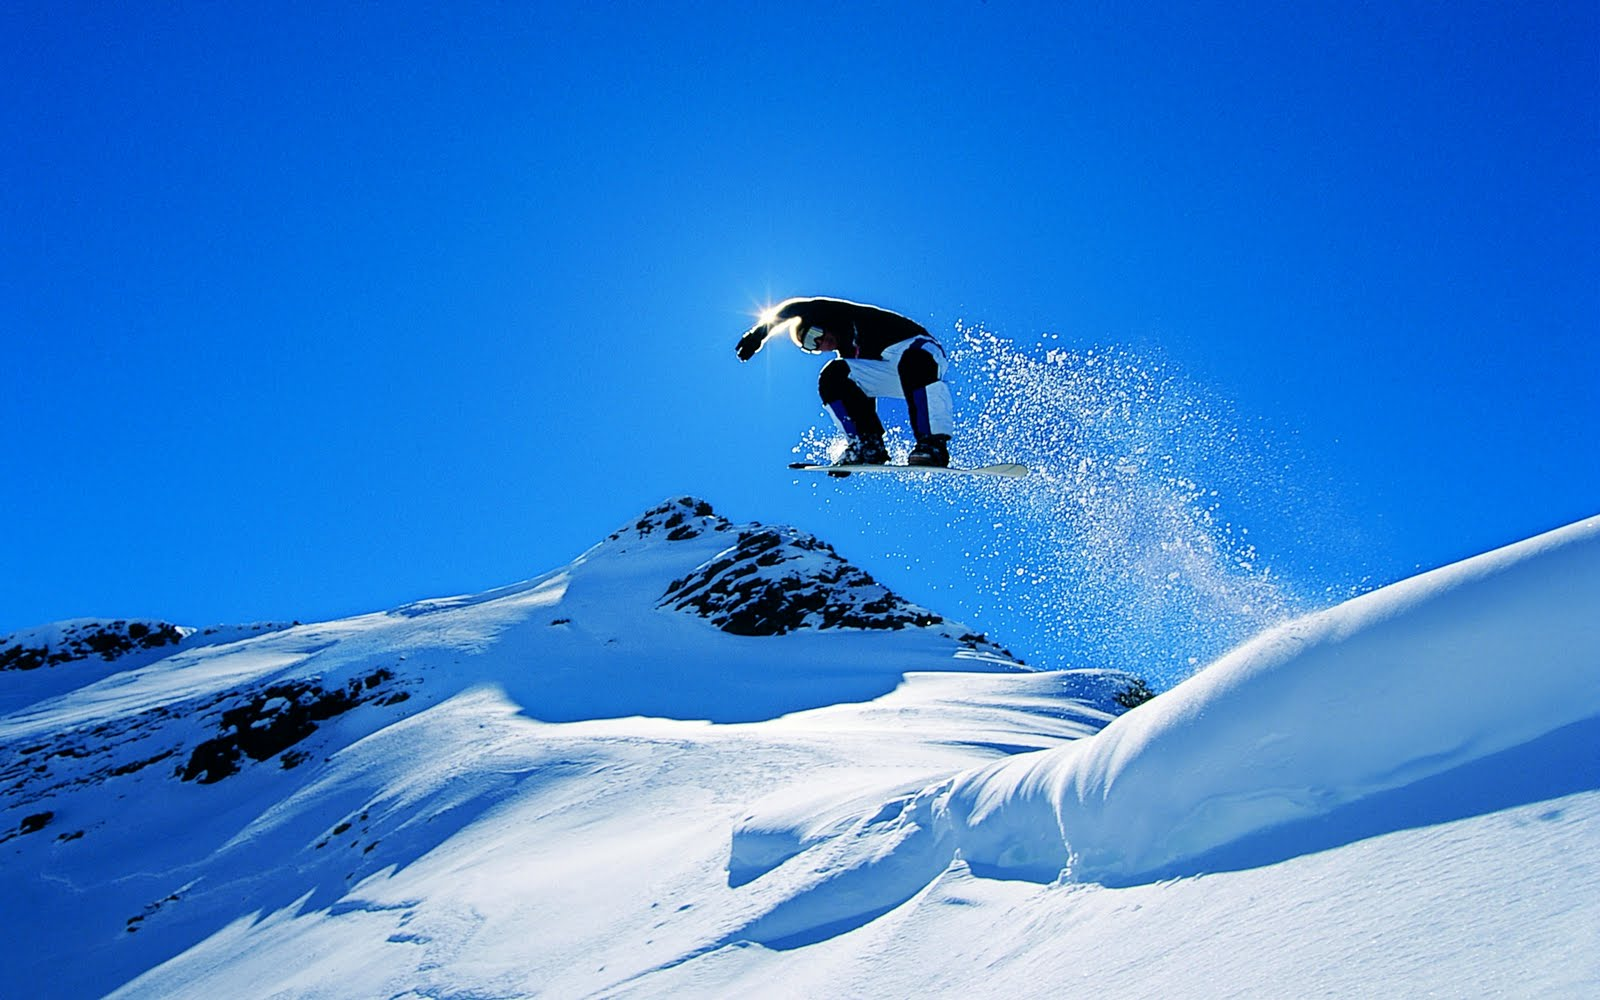 ONLY 4 WALLPAPER: AMAZING EXTREME SPORTS WALLPAPER [PART 1]